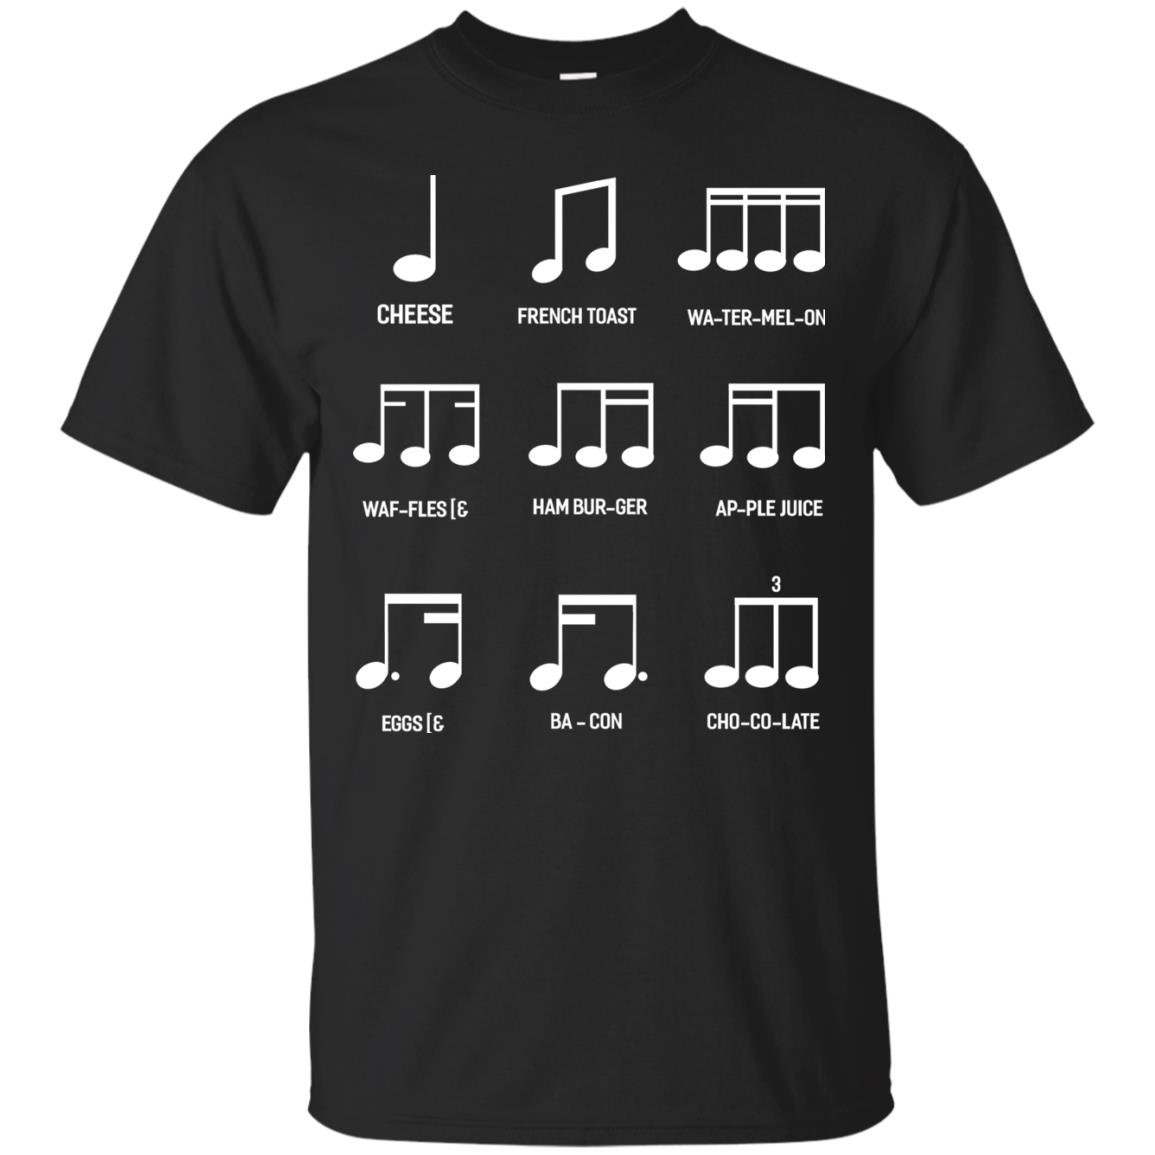 image 48 - Music Cheese French Toast Watermelon Shirt, Sweatshirt, Hoodie